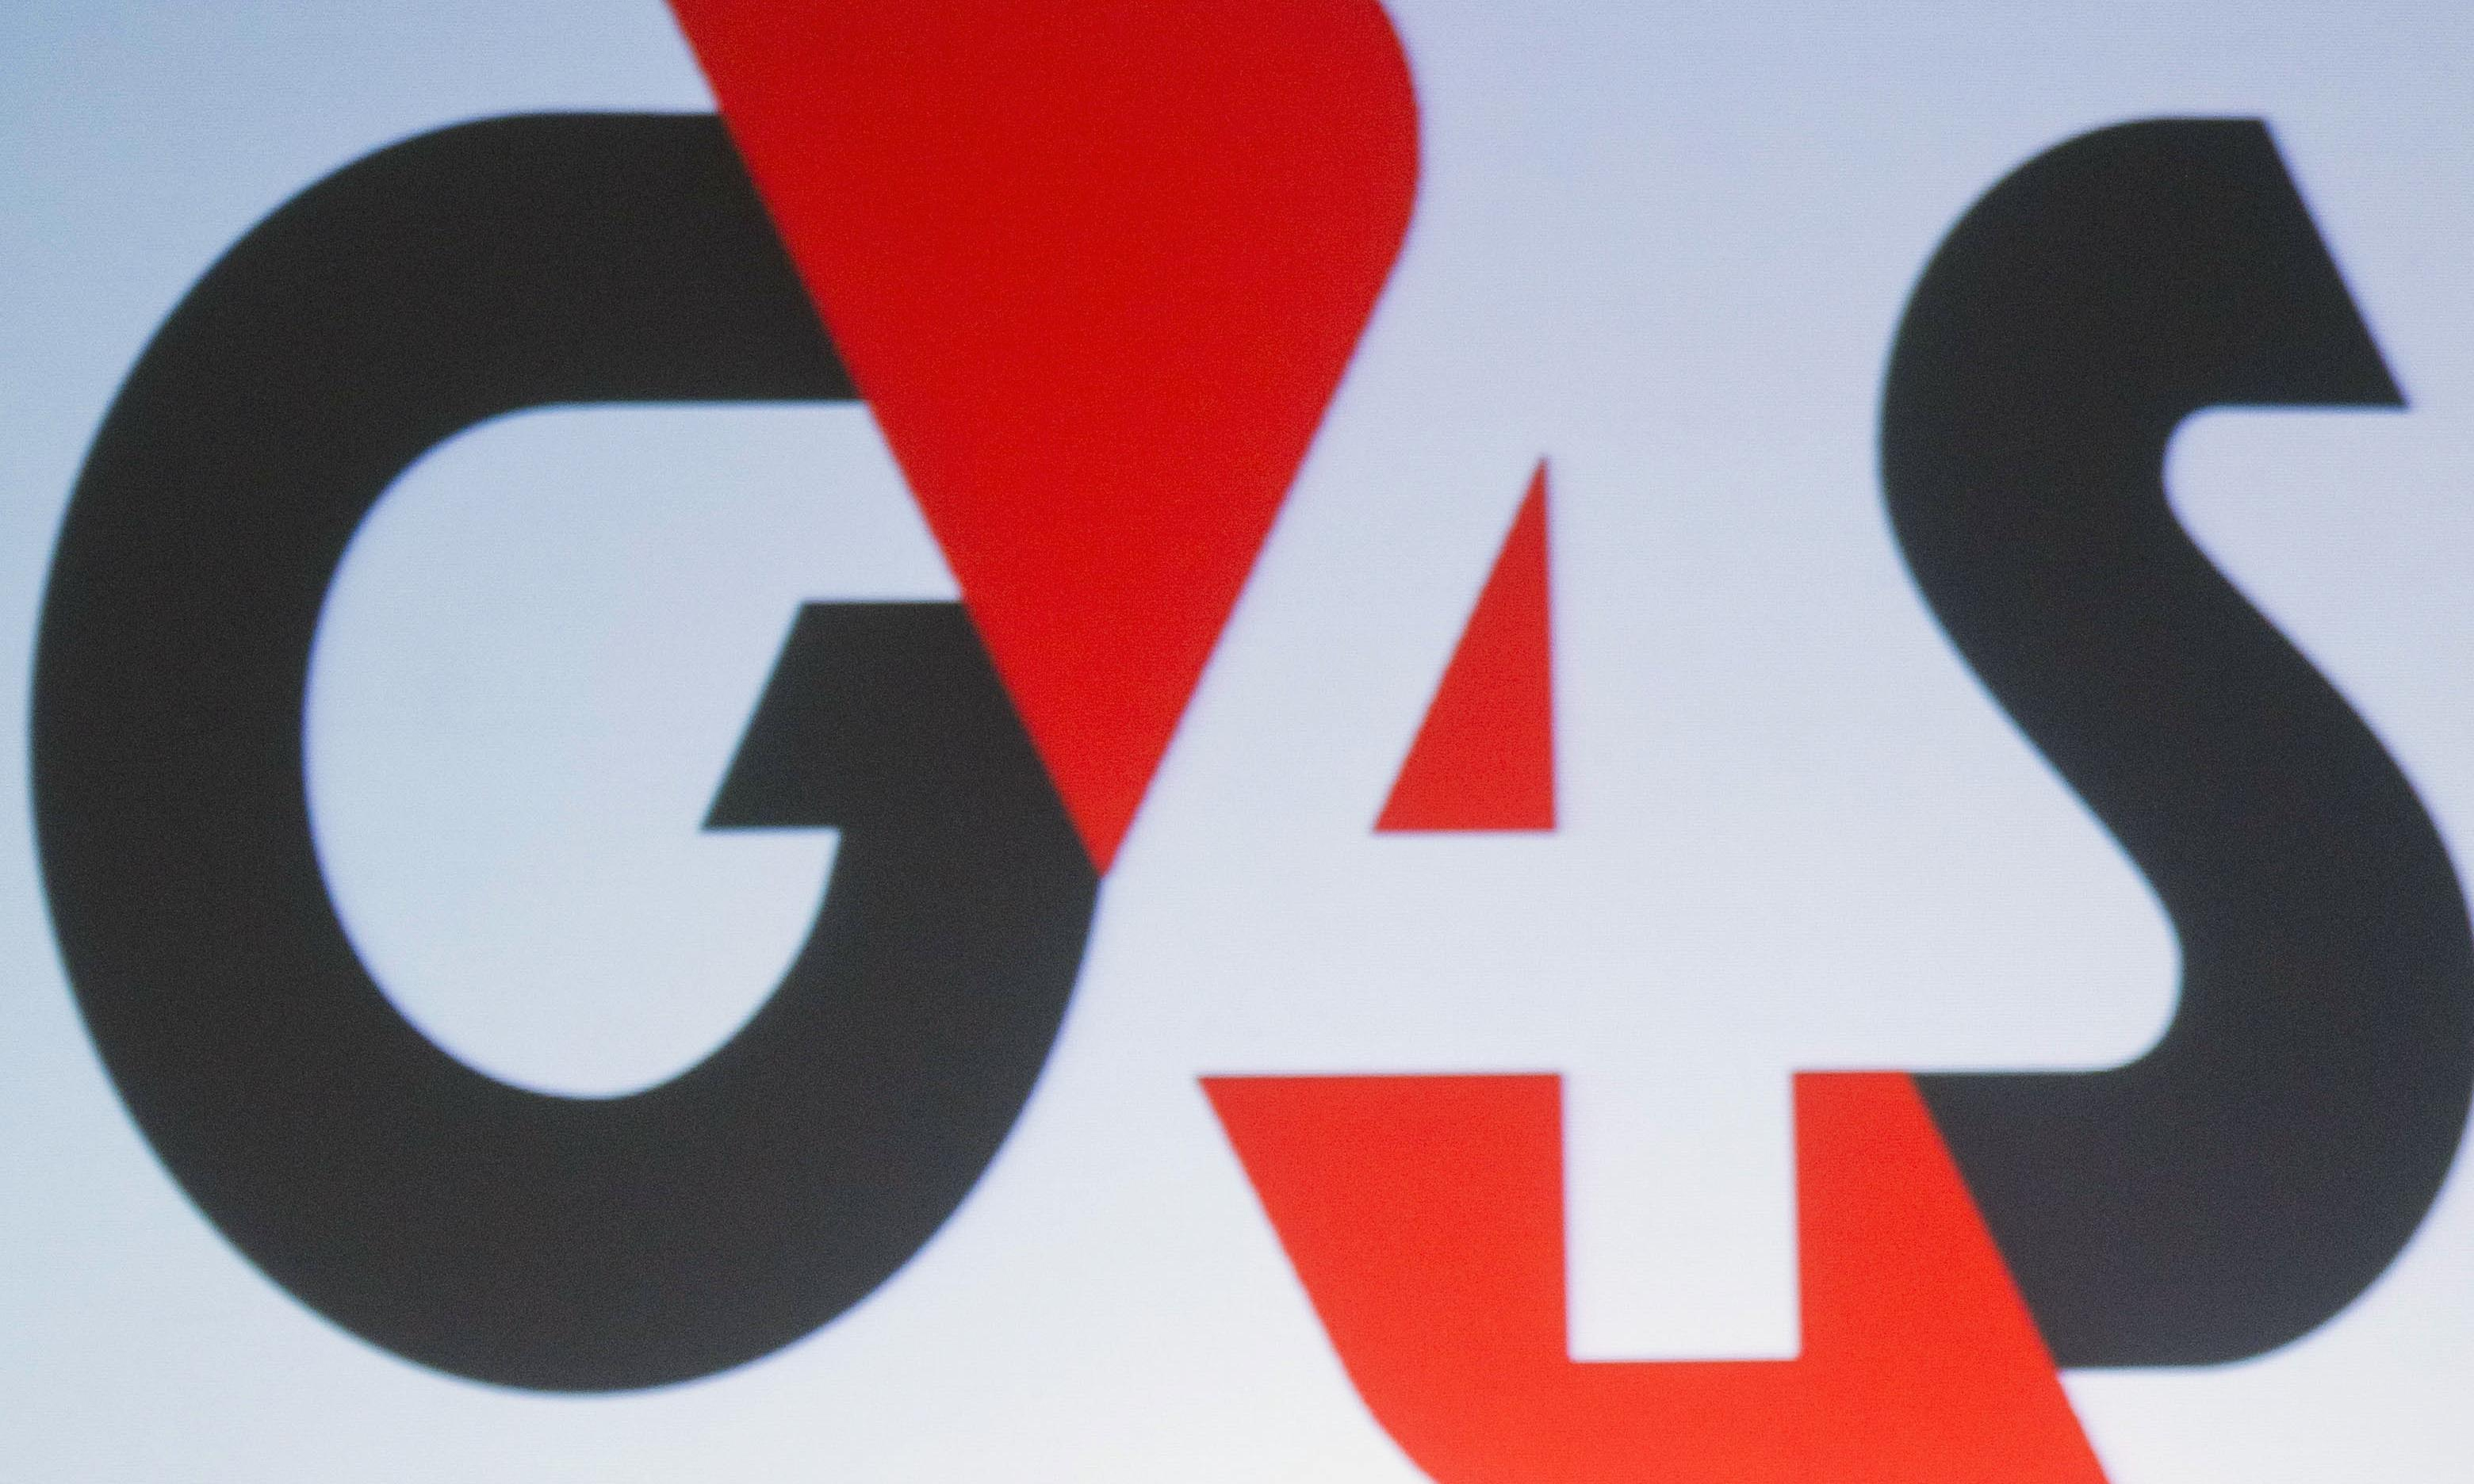 Labour to reform public appointments amid row over G4S director